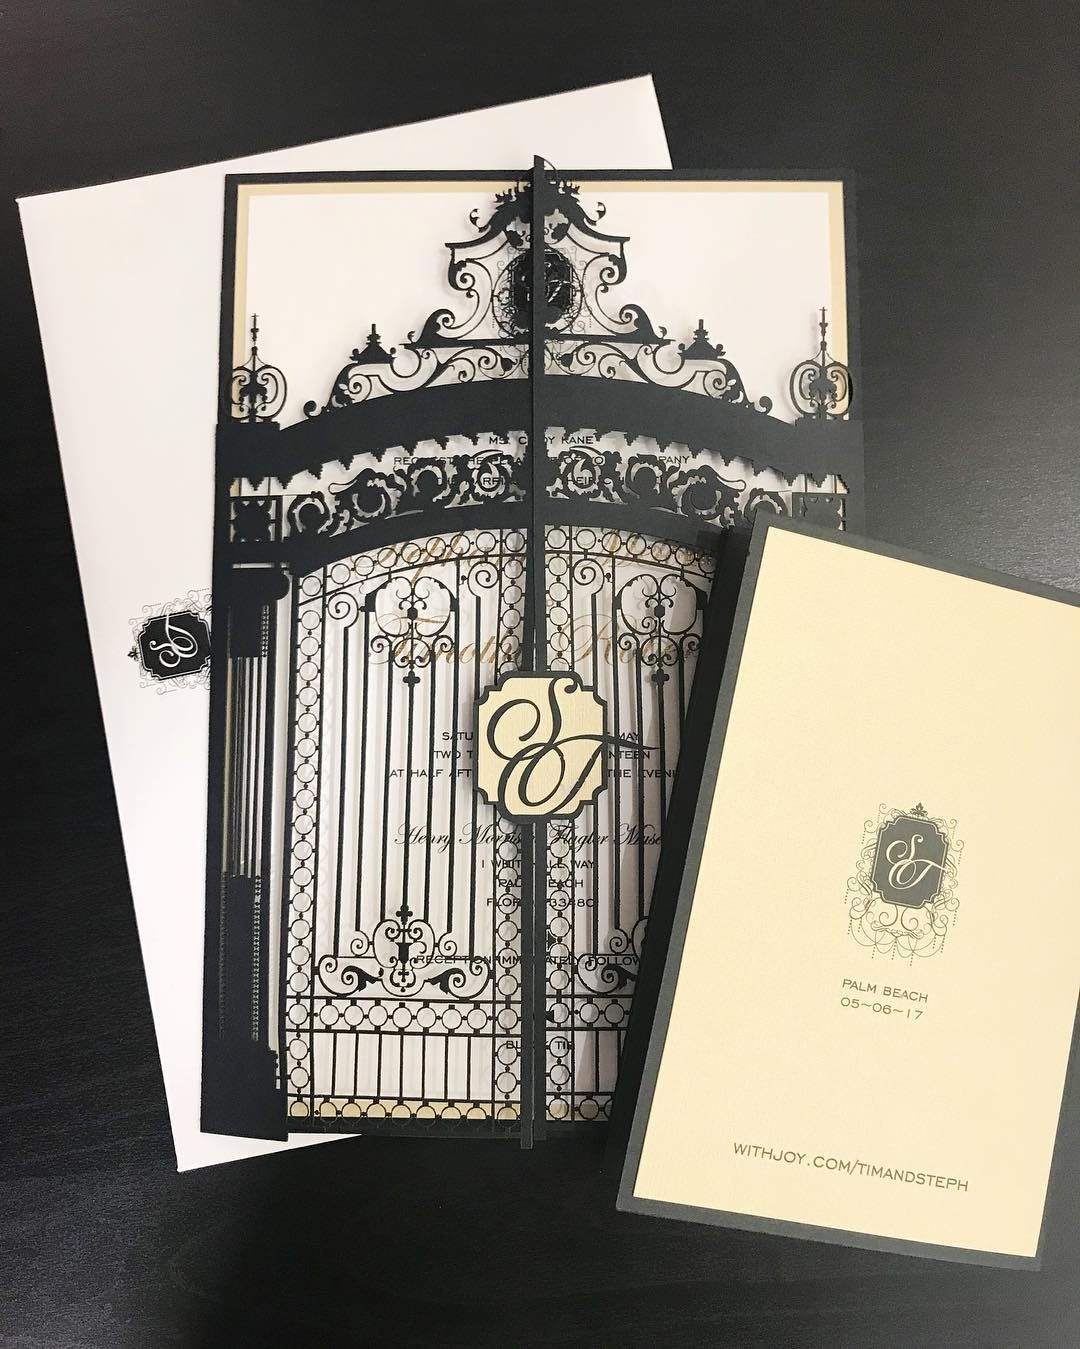 Flashback to our beautiful laser cut reproduction of the Flagler Museum gates wedding invitations. Does your venue have a spectacular